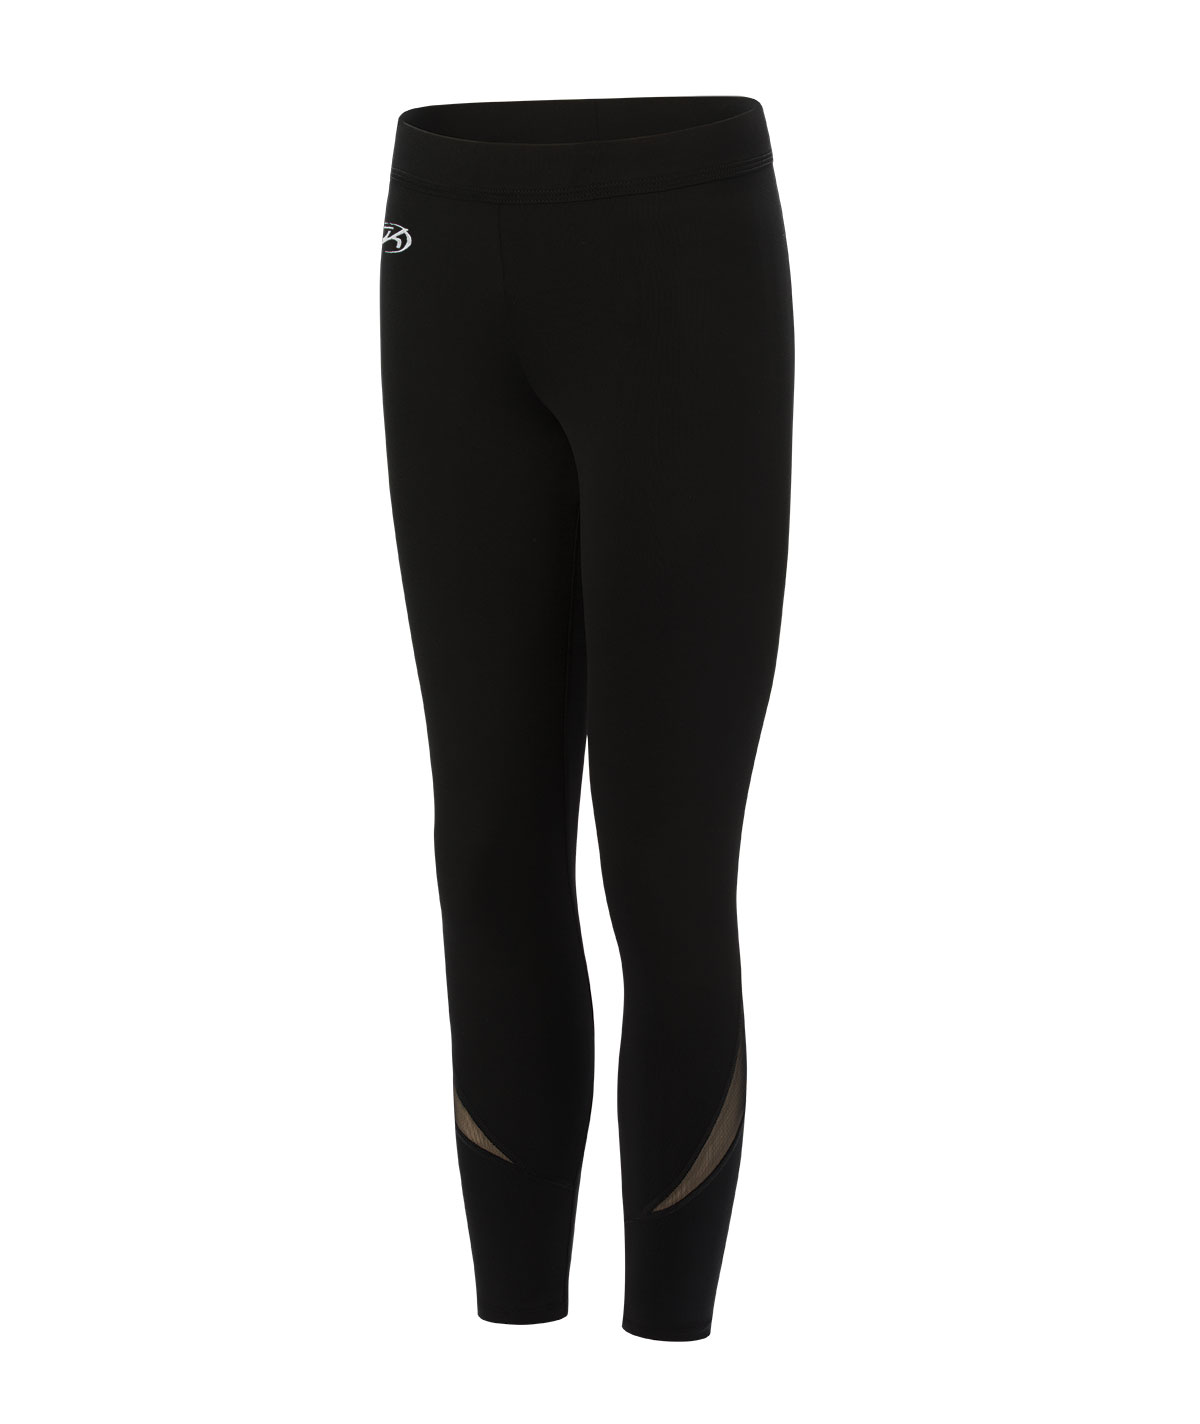 GK All Star Performance Tights